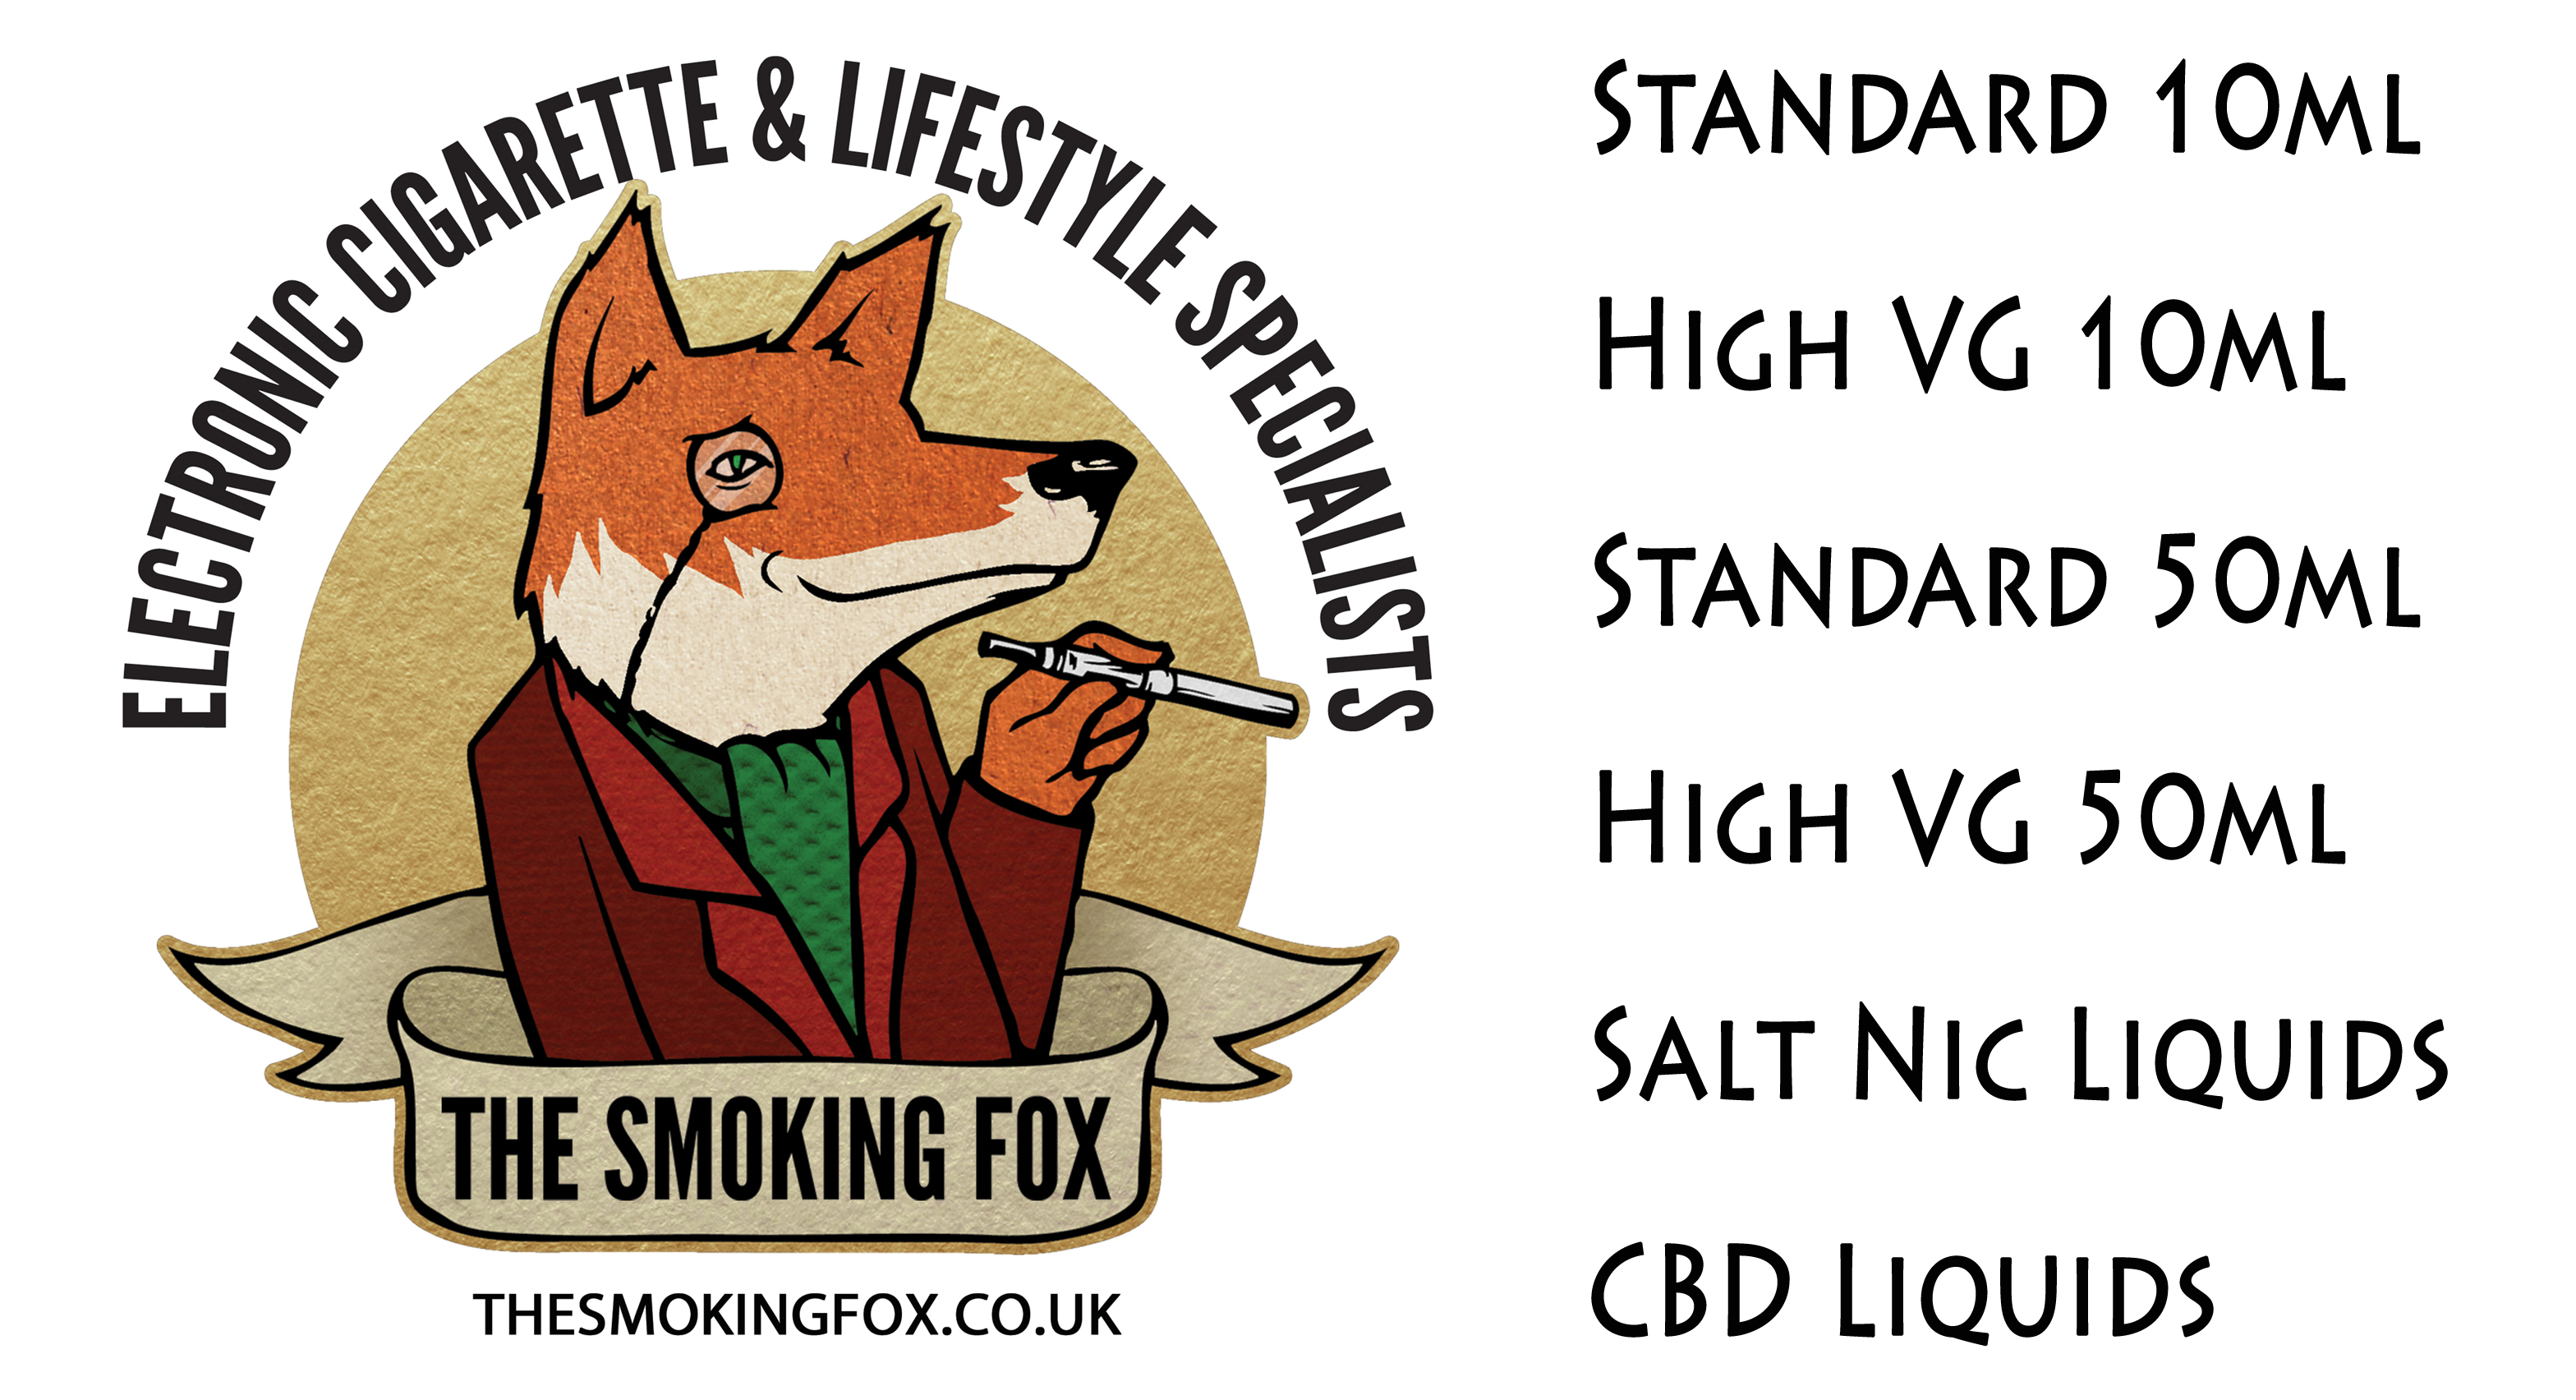 The Smoking Fox